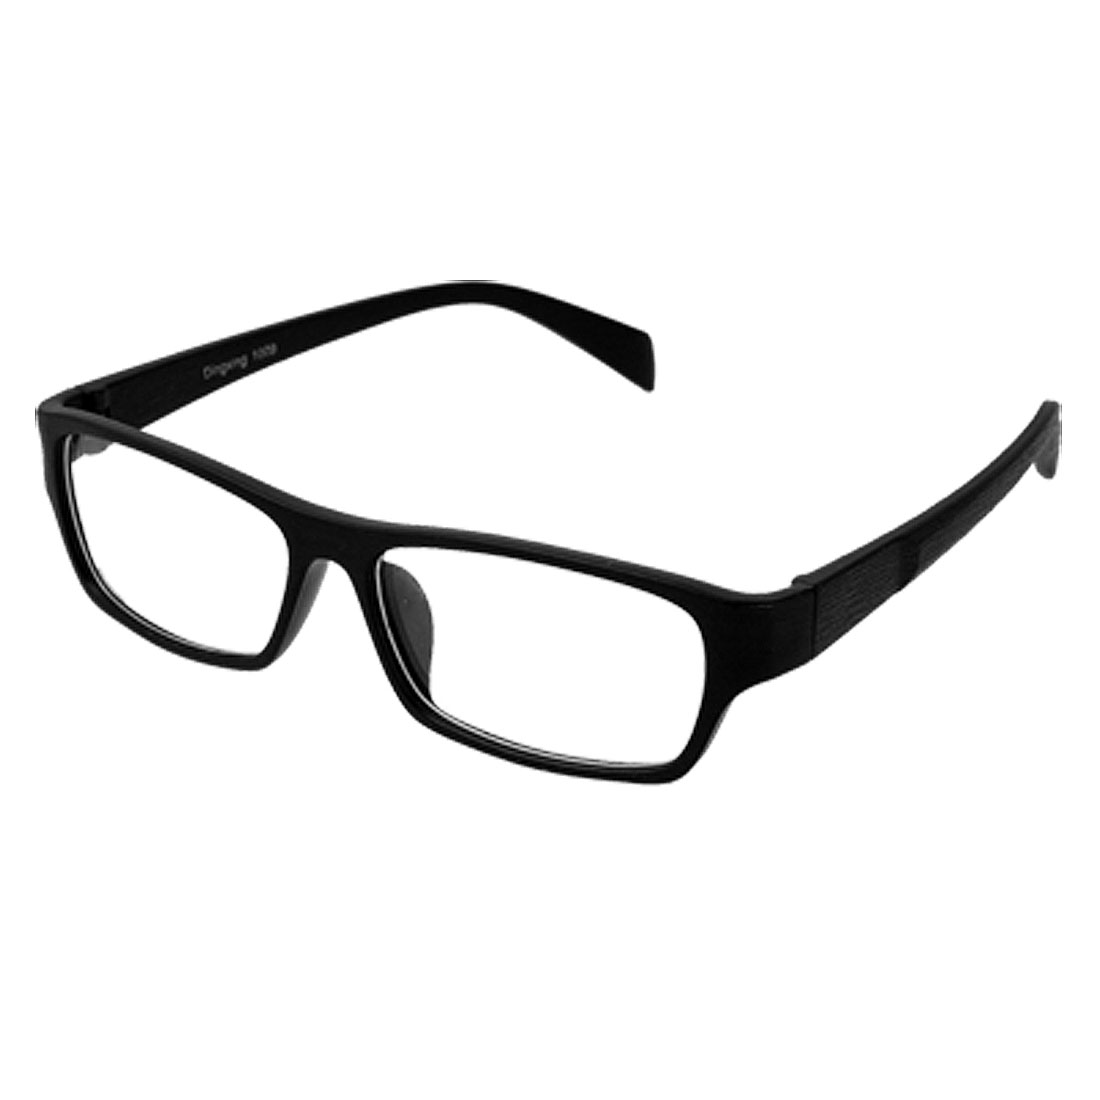 Wood Grain Black Rectangle Unisex Eyewear Glasses